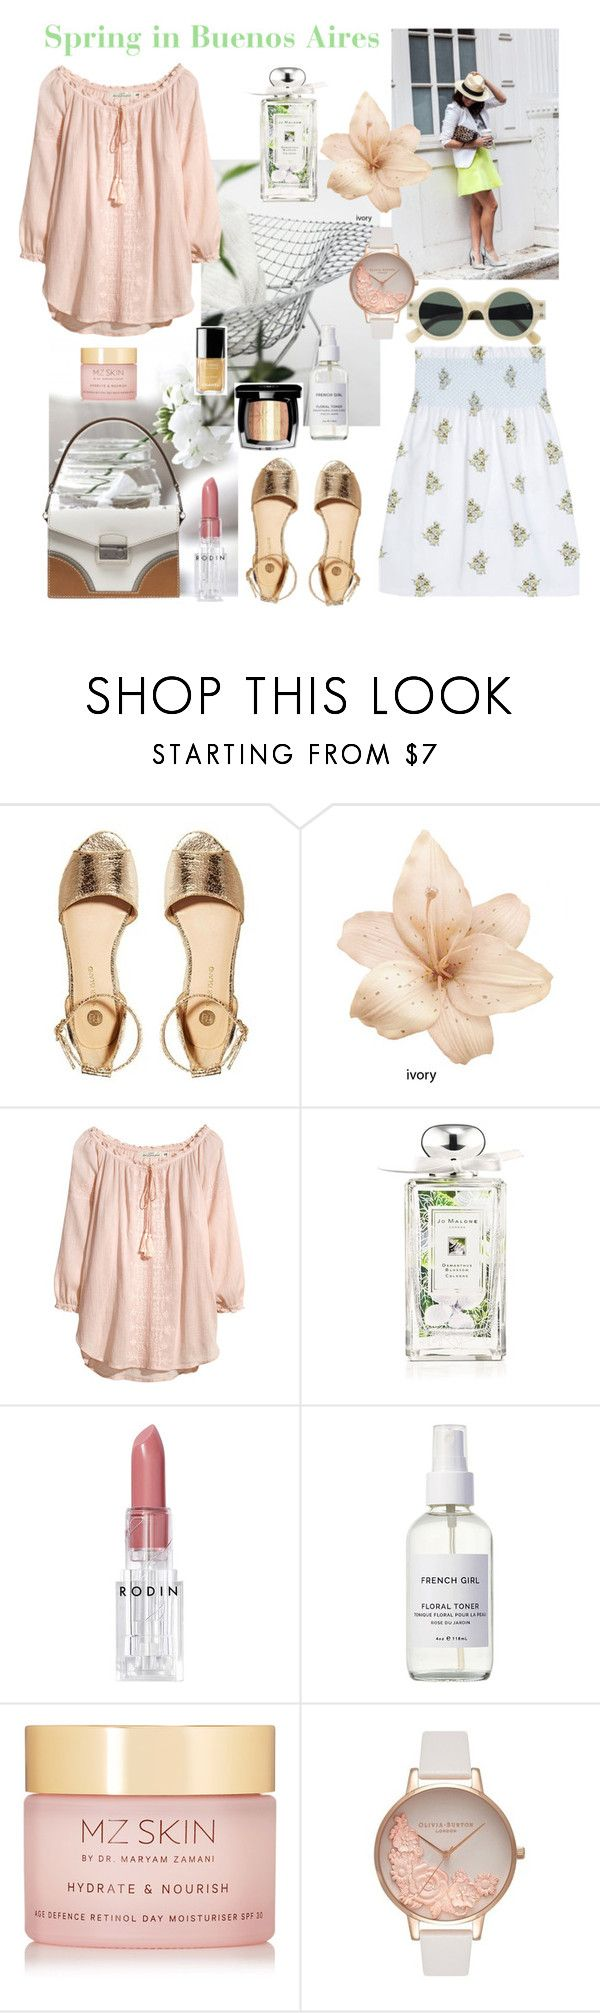 """Spring in Buenos Aires"" by nathalie-puex ❤ liked on Polyvore featuring Miu Miu, River Island, H&M, Chanel, Jo Malone, Rodin, French Girl, MZ Skin and Olivia Burton"